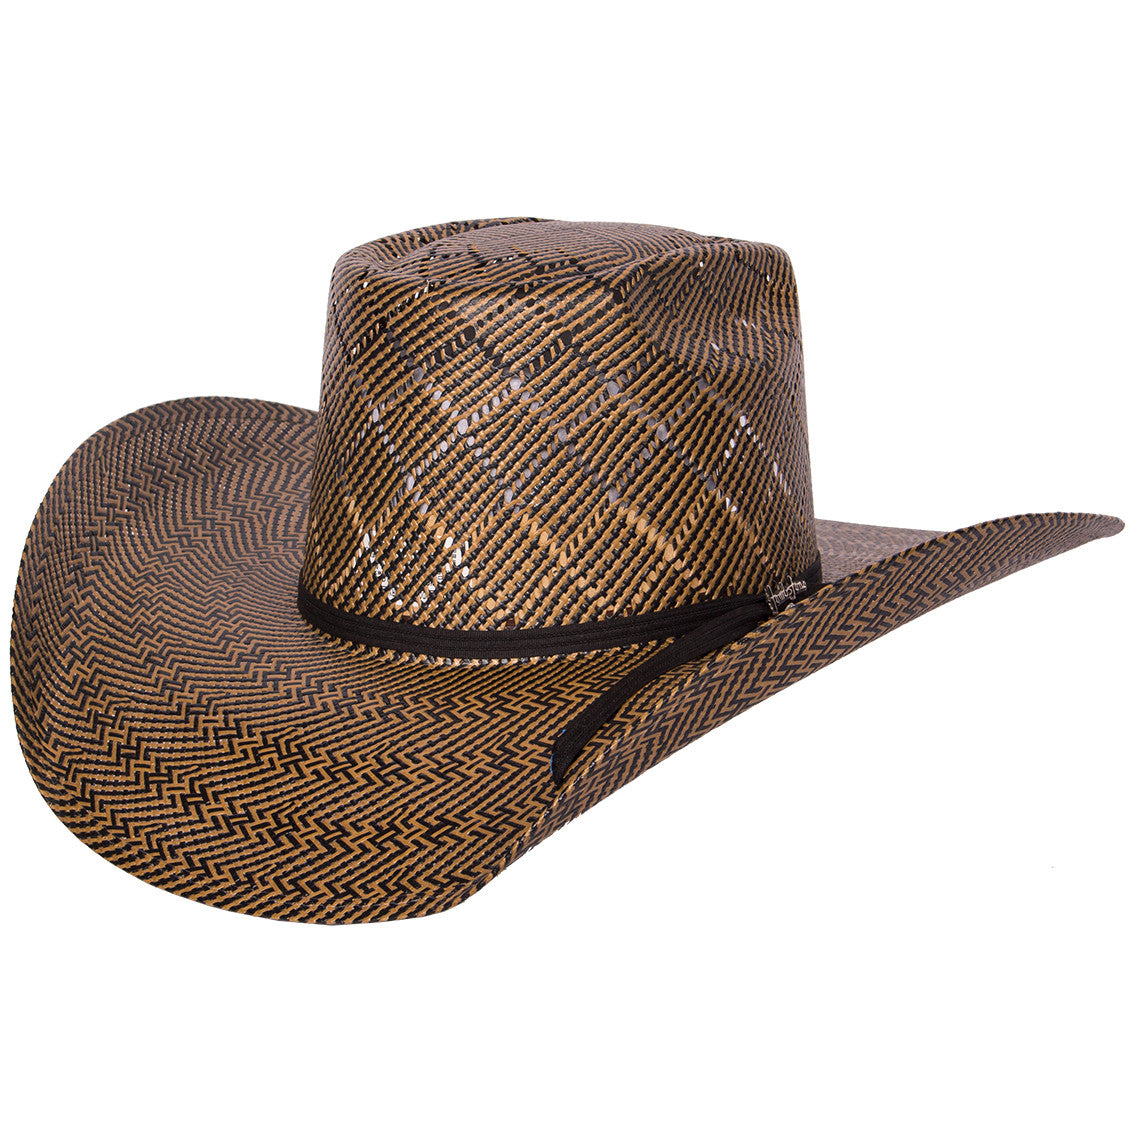 Tombstone Longhorn Diamond Pattern Cowboy Straw Hat